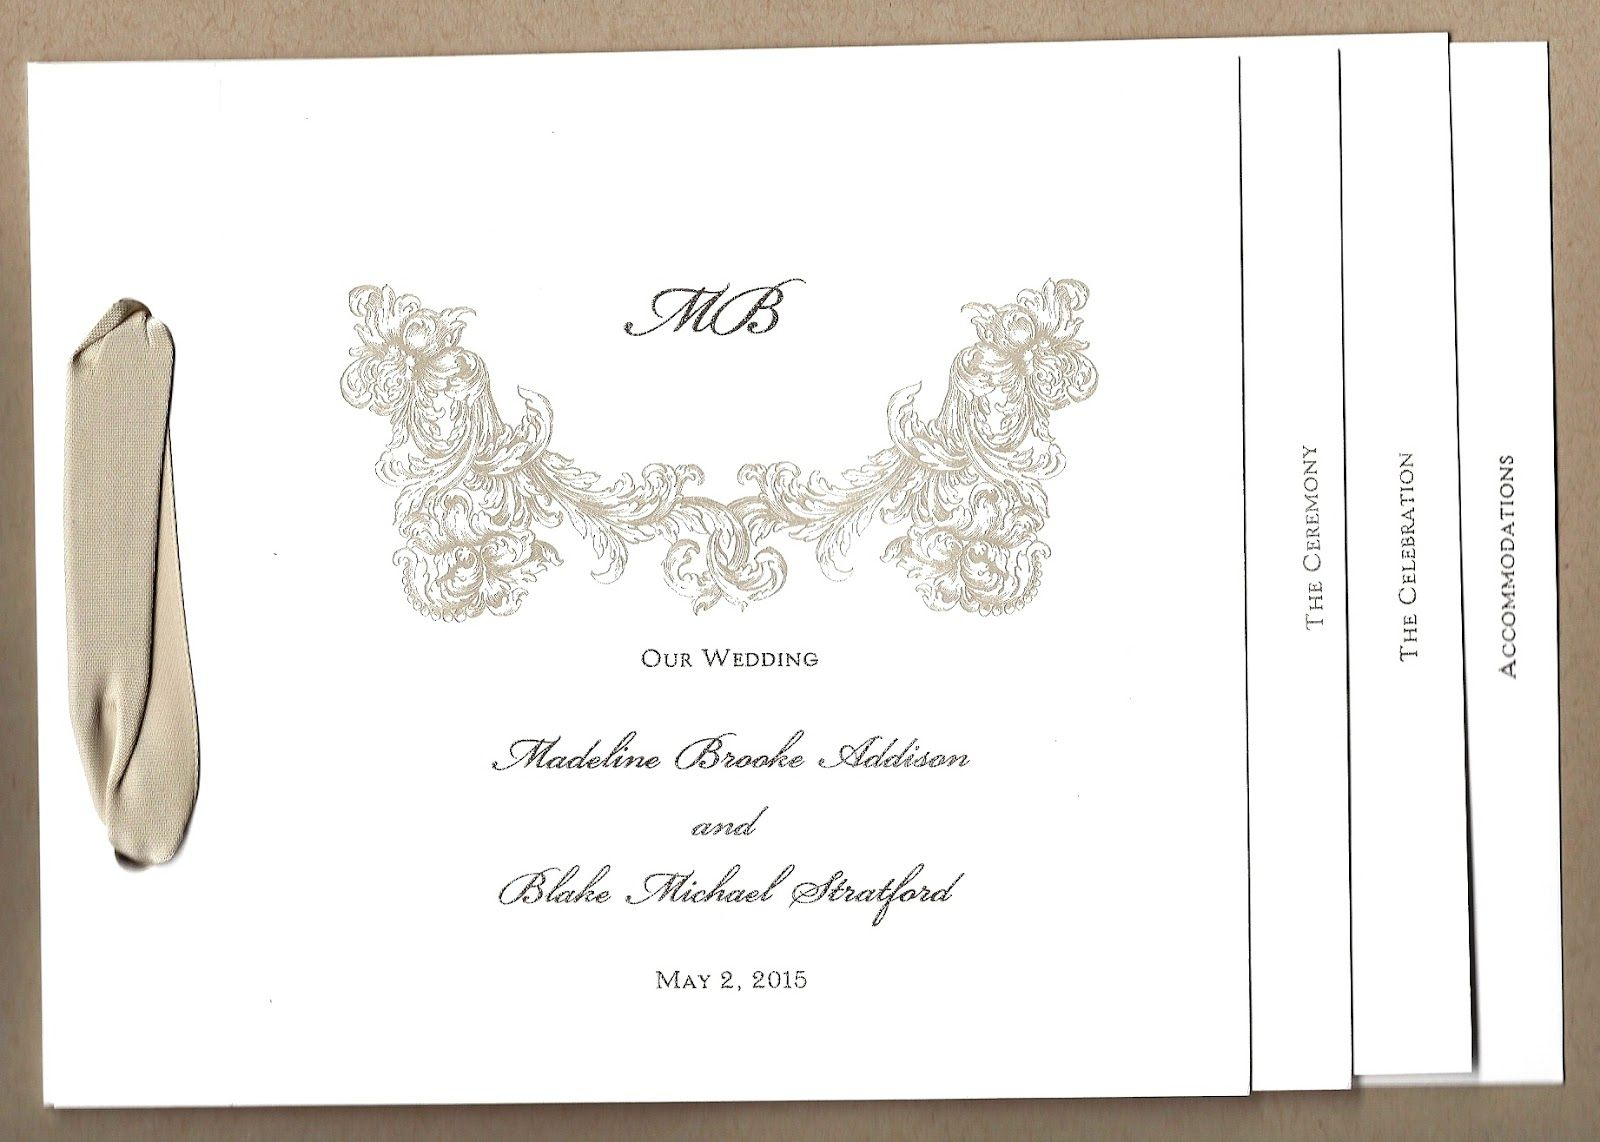 Make Your Own Wedding Invitations Online Free | Invitations Card ...